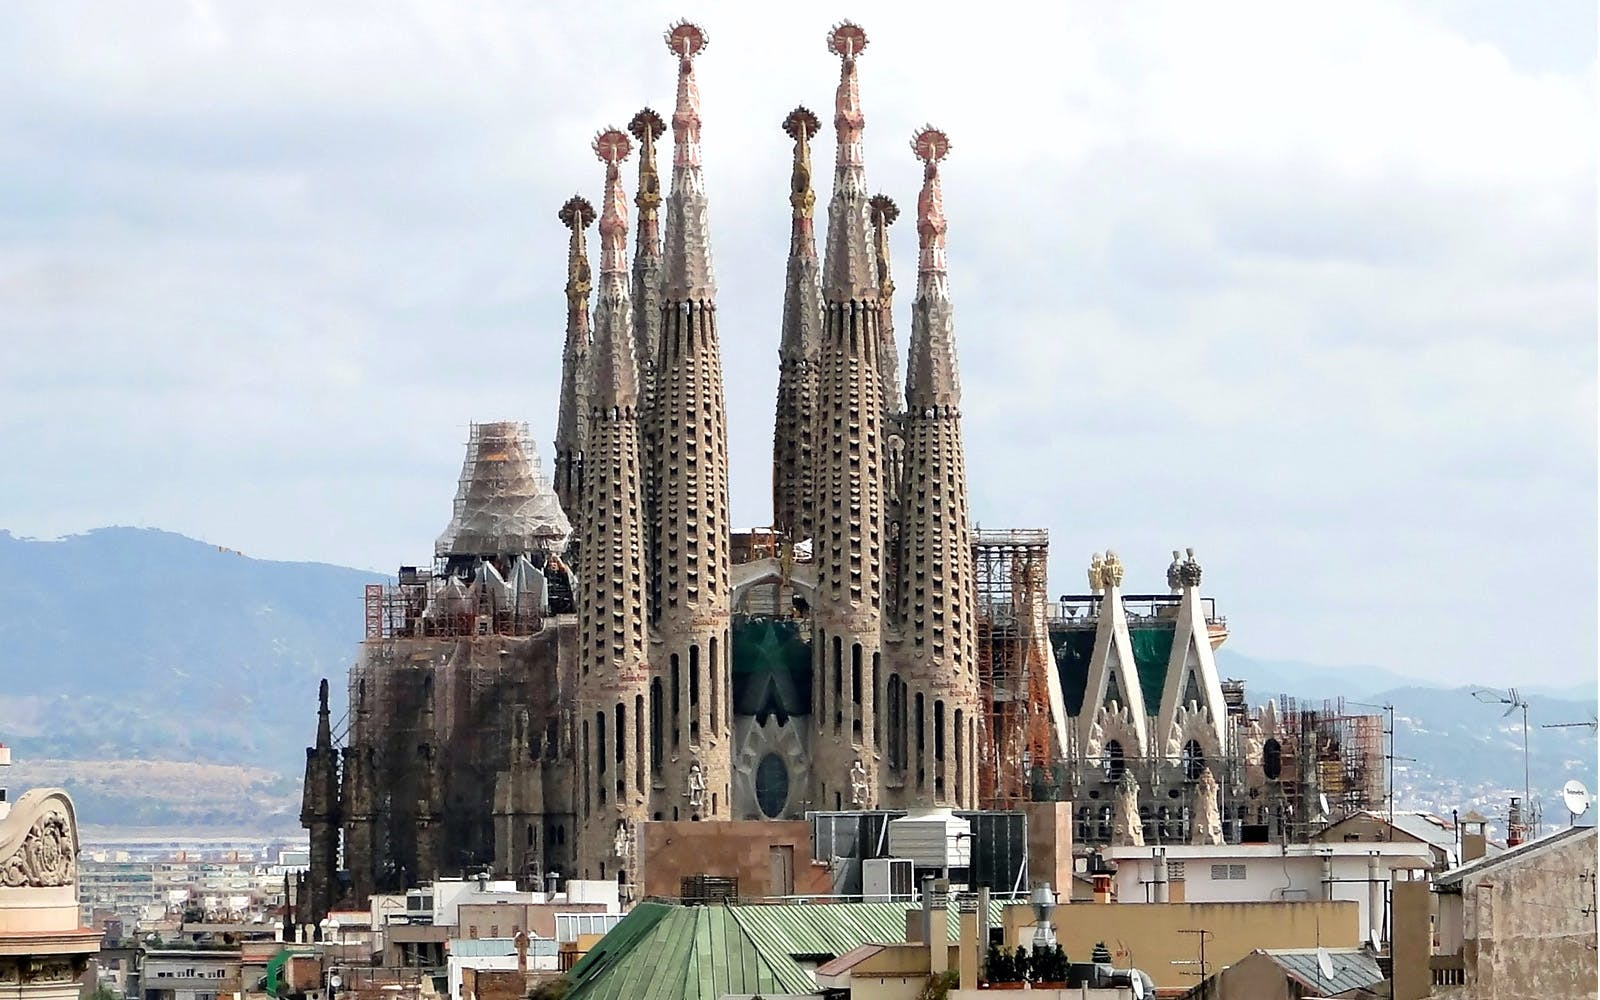 Skip the Line: Guided Tour of Sagrada Familia, Towers and Park Güell